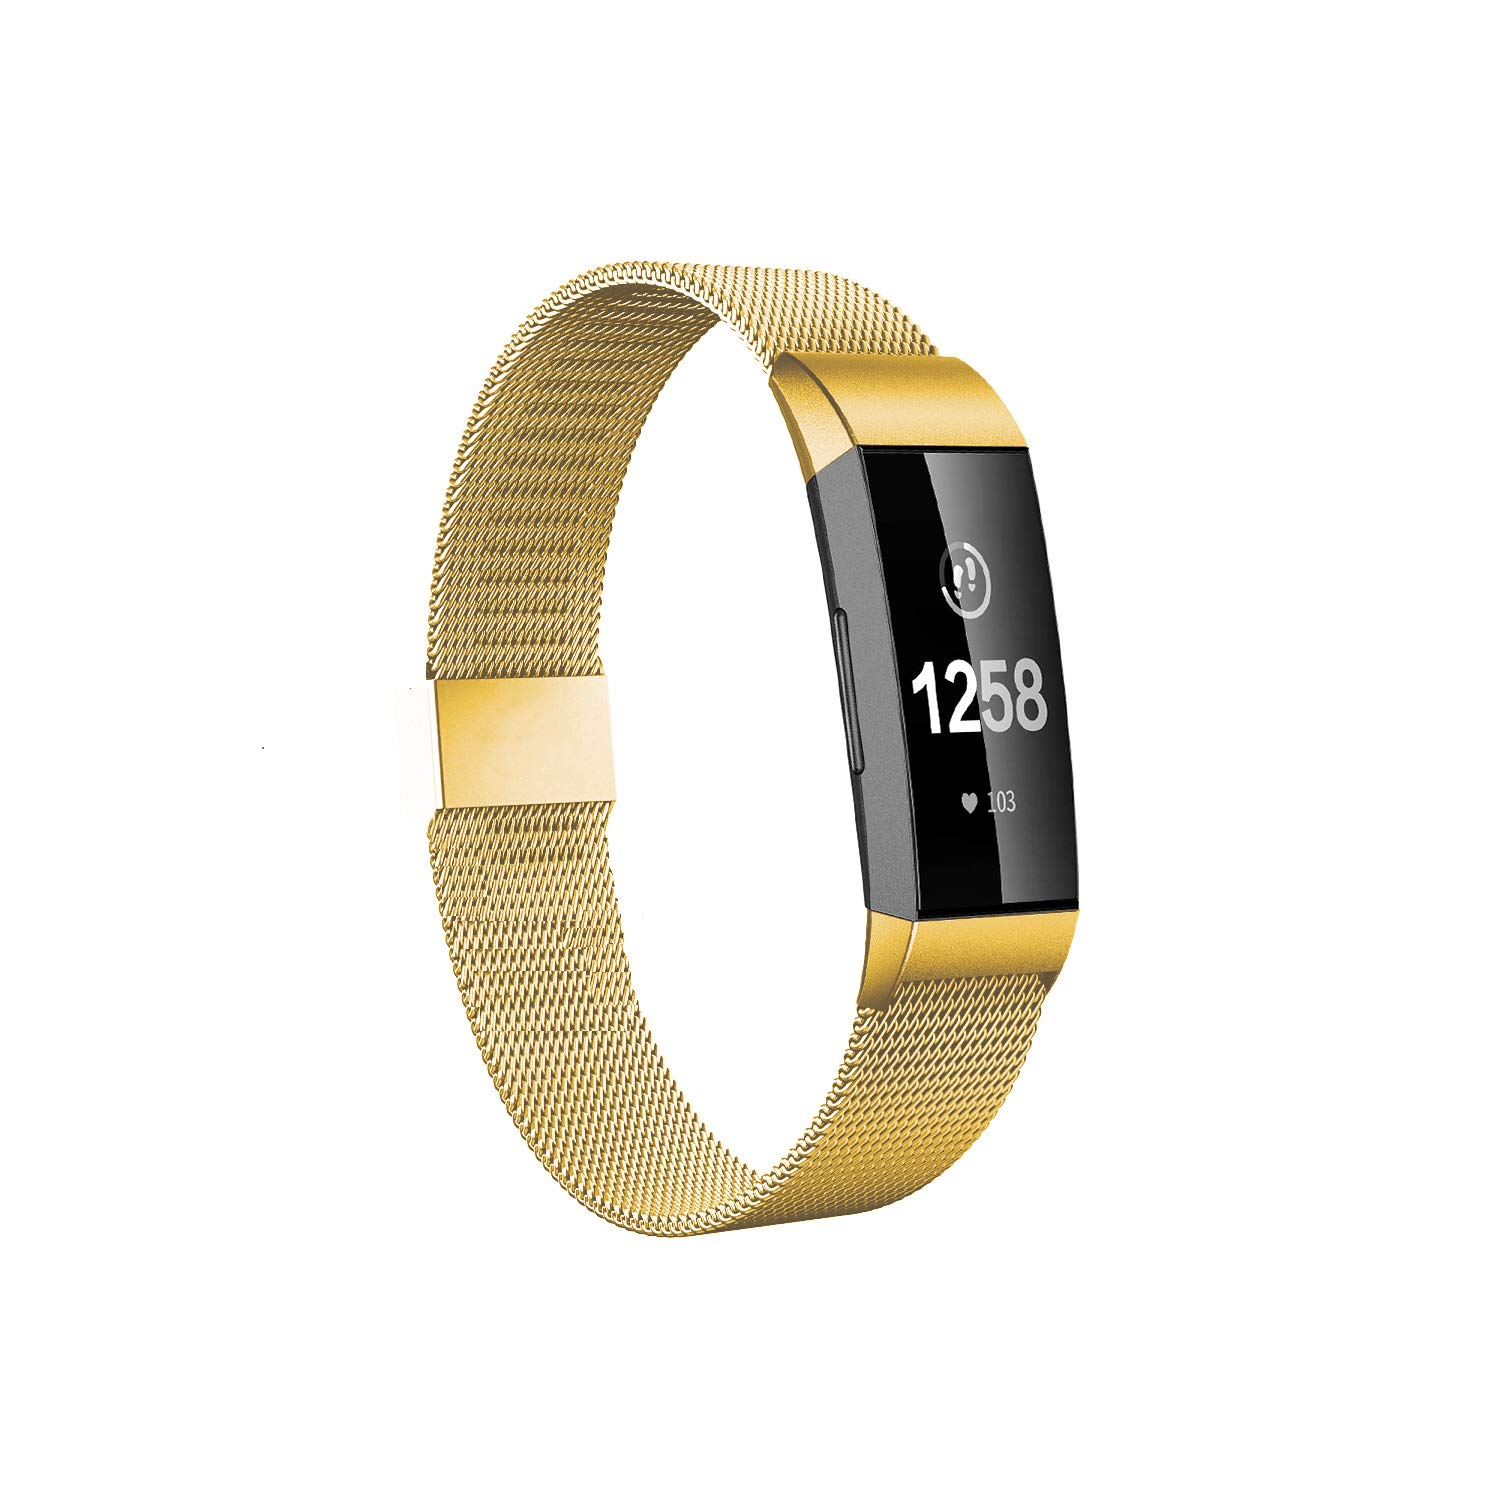 Fitlink Stainless Steel Bands Replacement for Charge 3 and Charge 3 SE for Women Men,Multi Color Multi Size(Gold,Small)